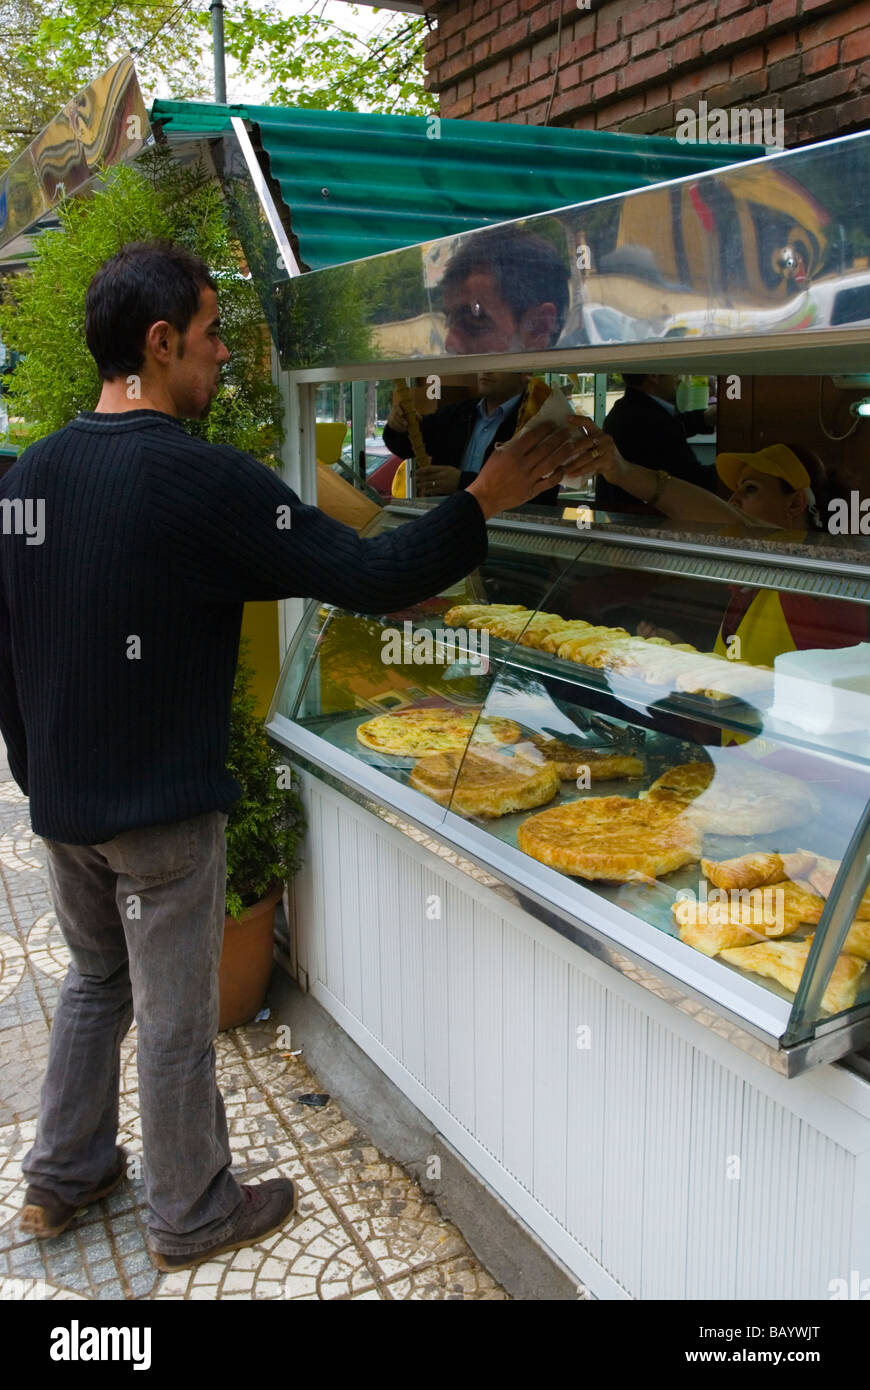 Kiosk selling pies and bureks in Blloku district of Tirana Albania Europe - Stock Image